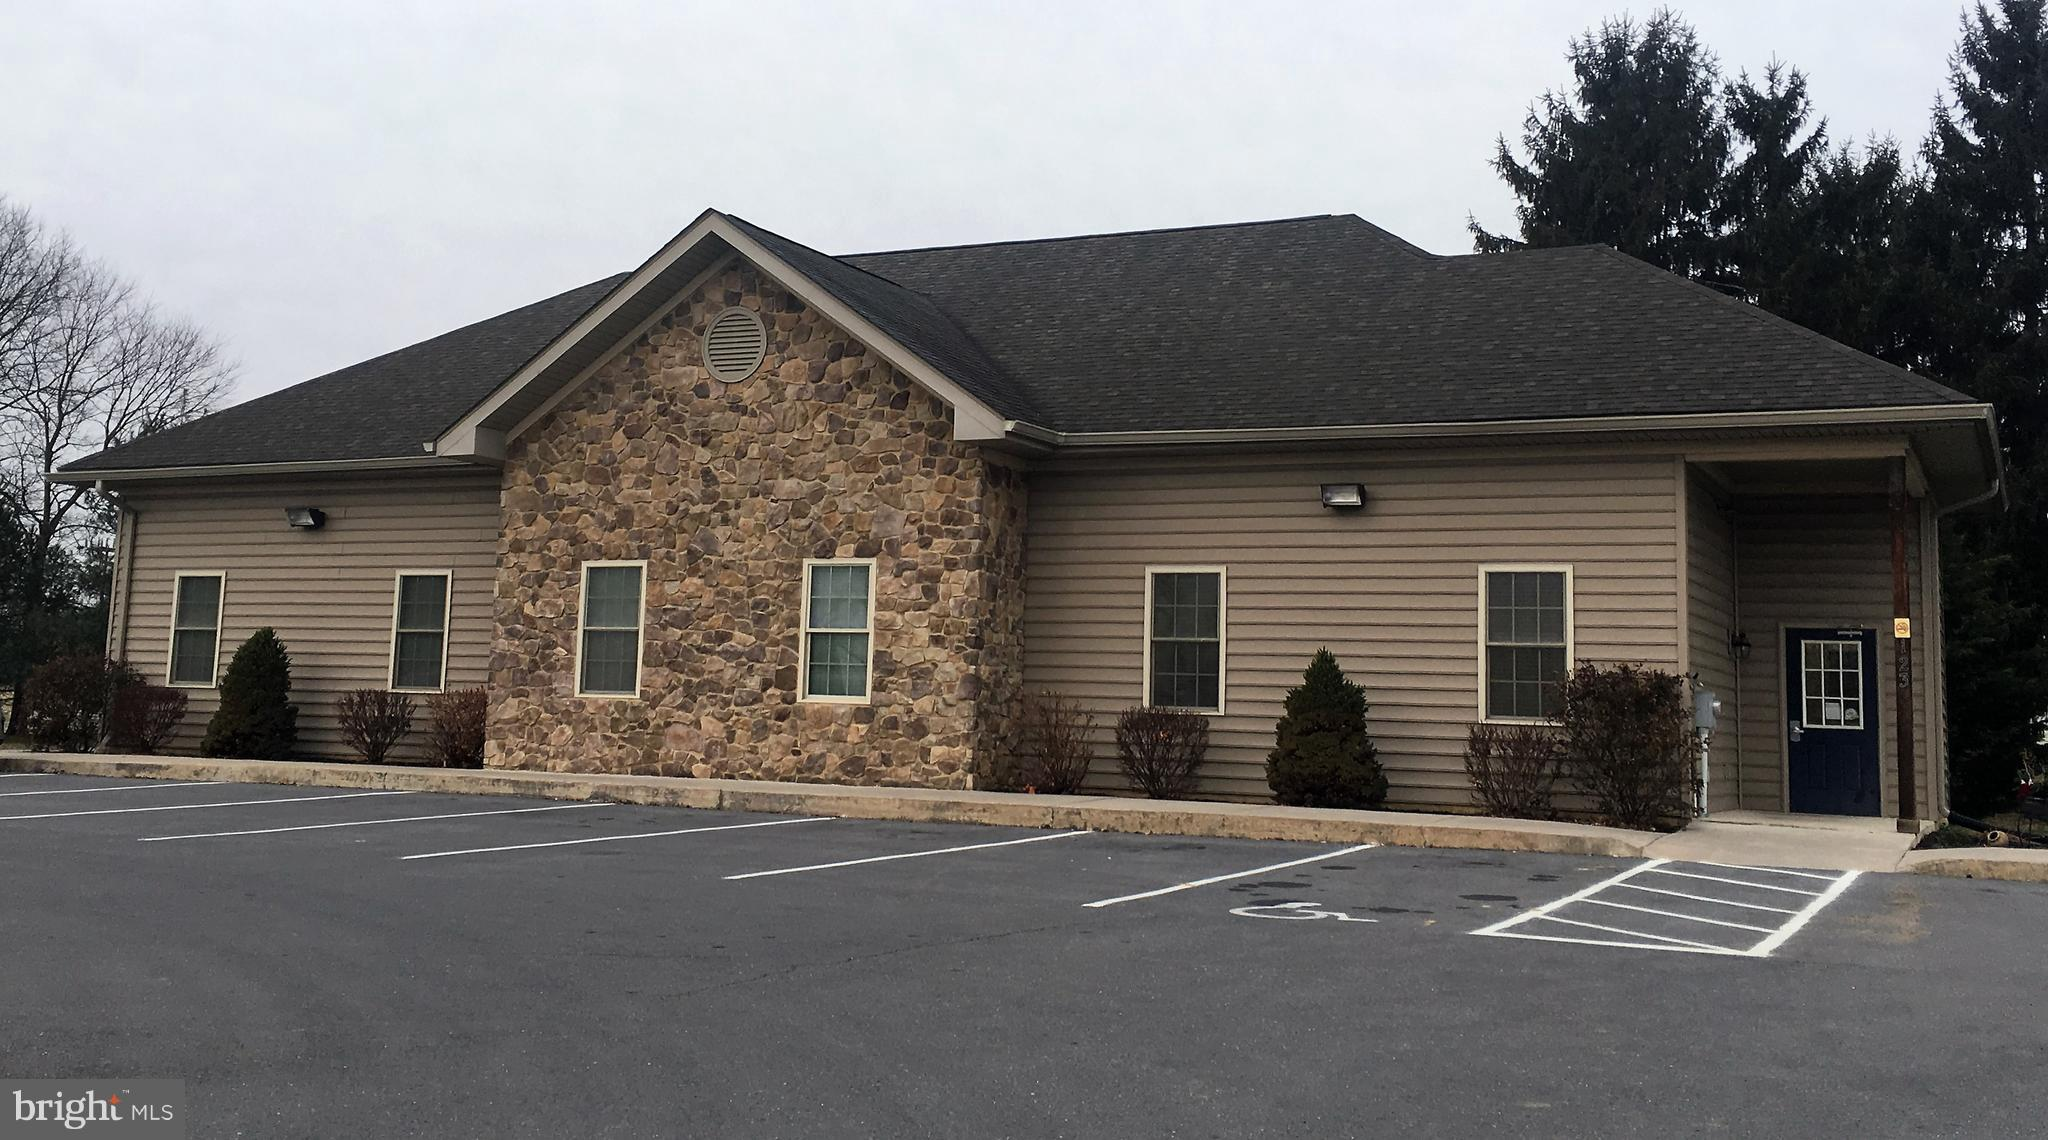 123 HEALTH CARE LANE, MARTINSBURG, WV 25401